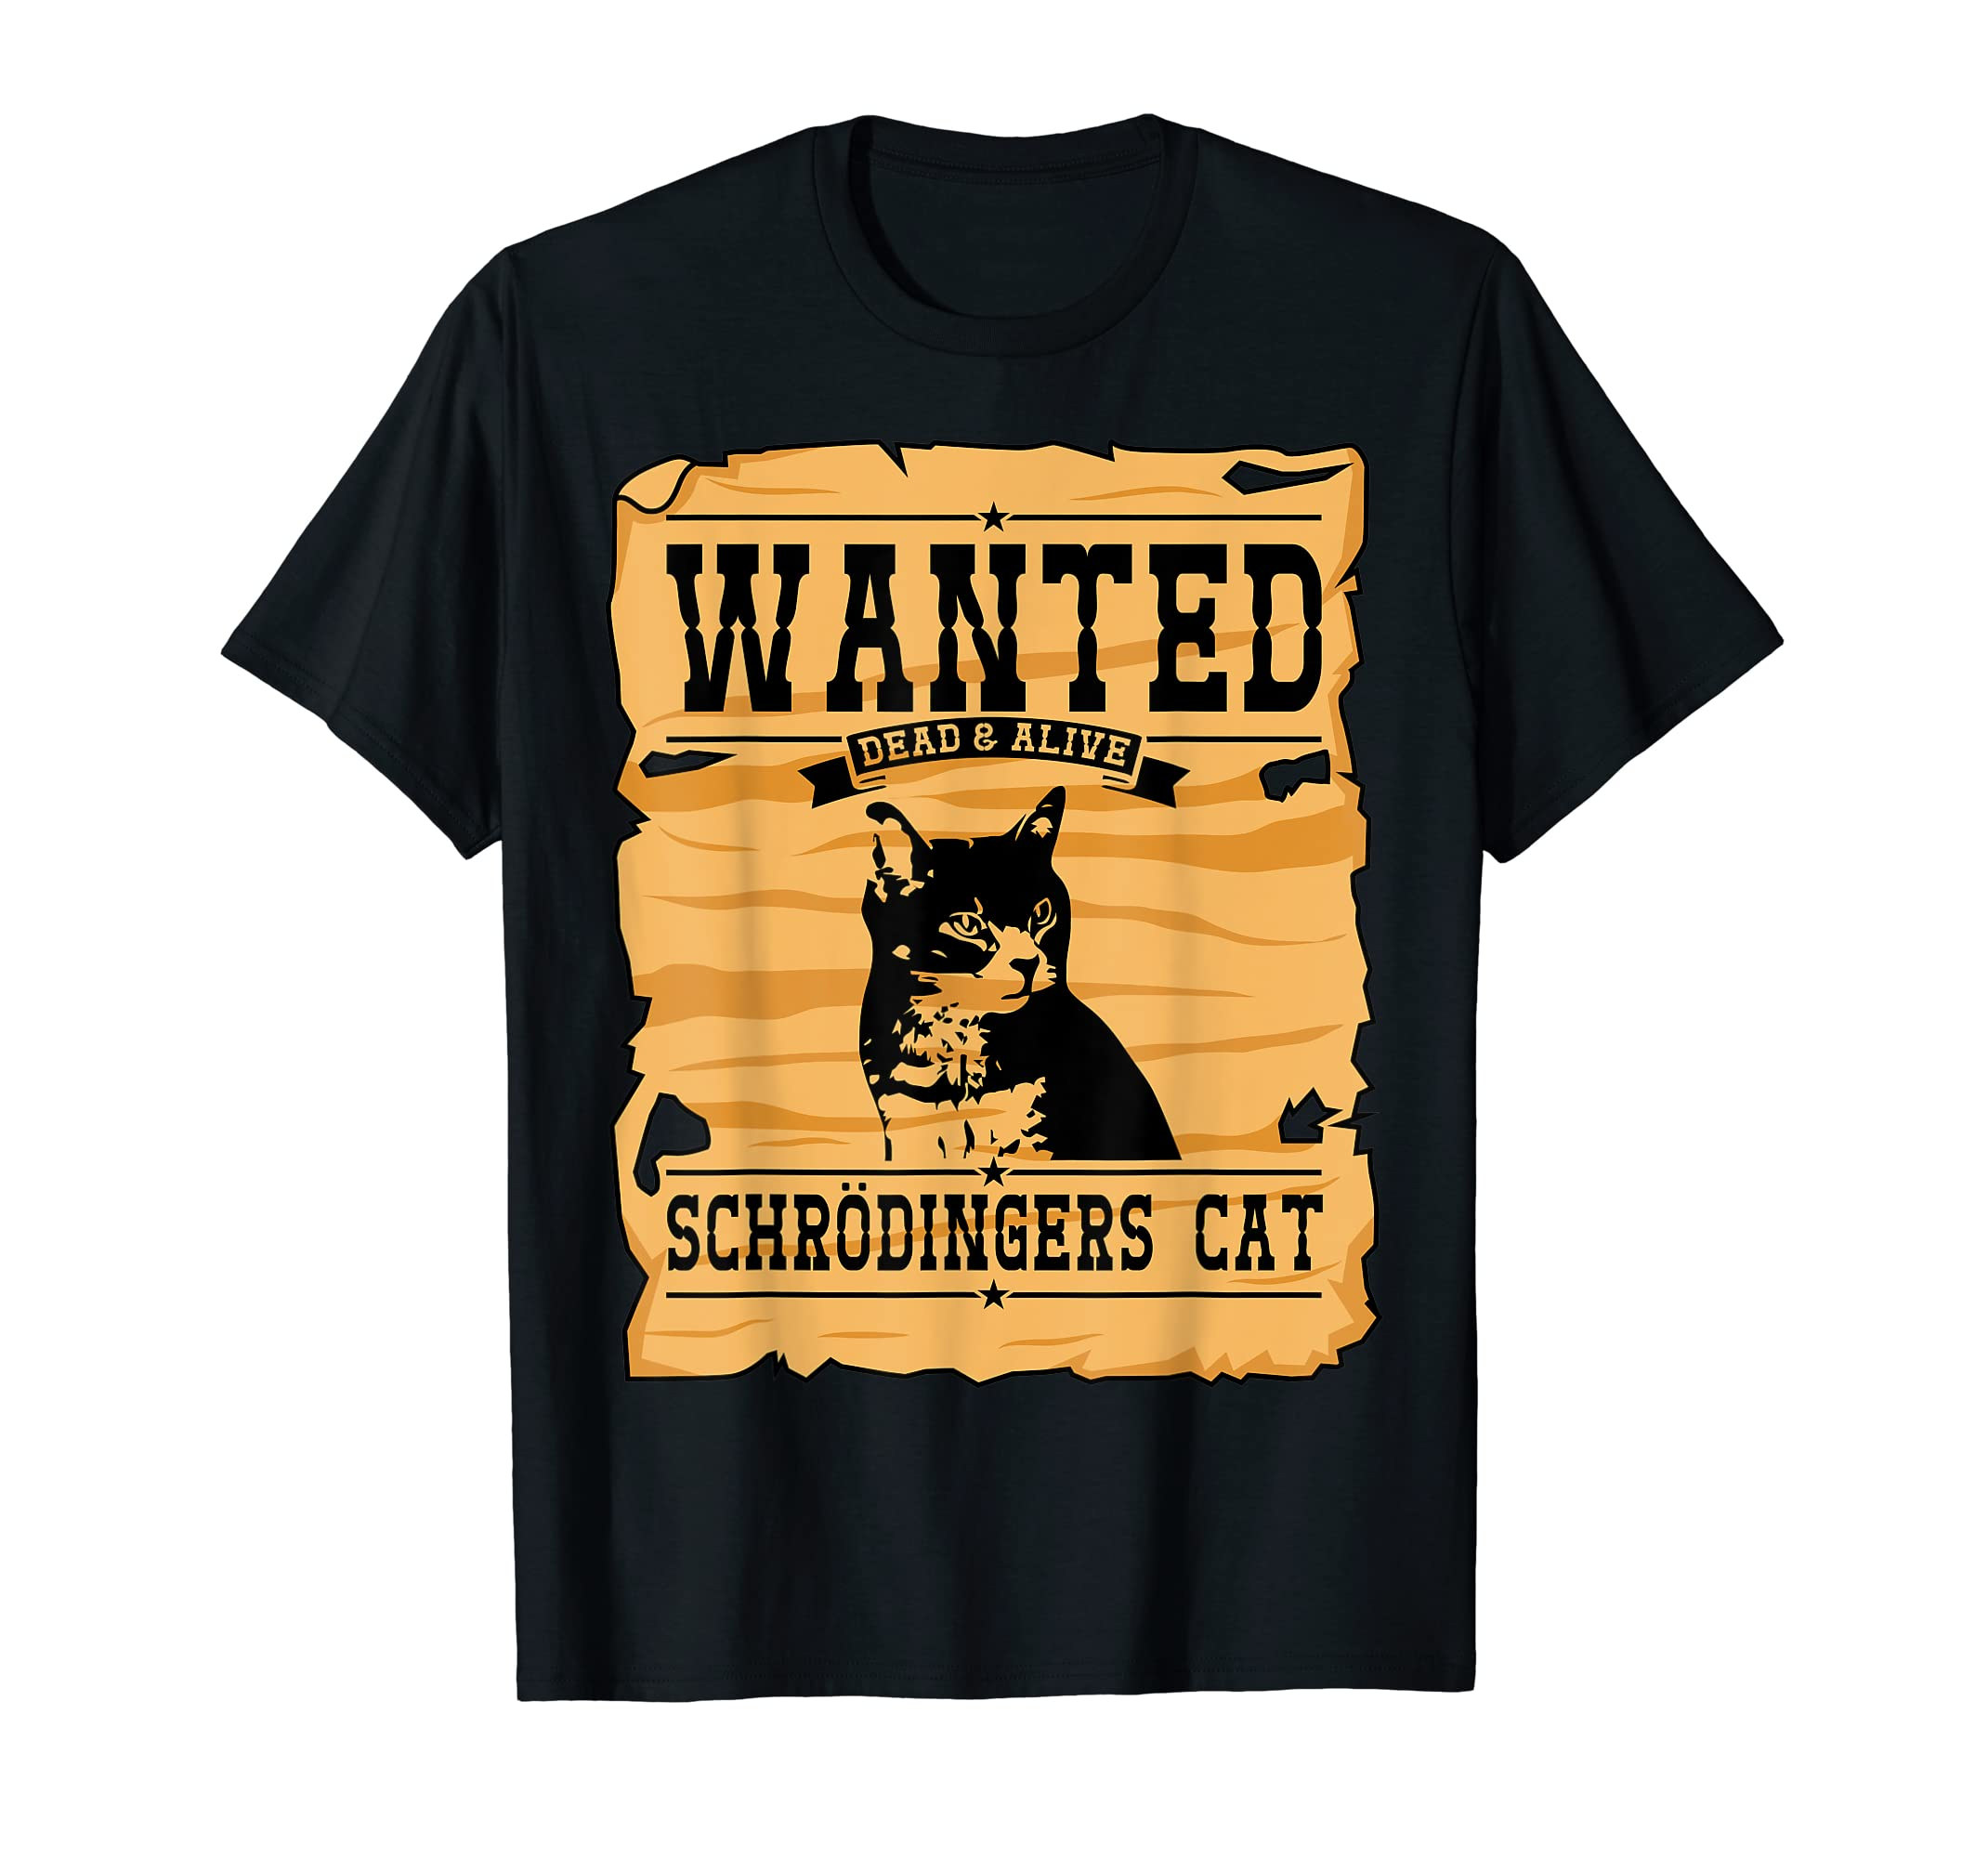 b547b018f Amazon.com: Wanted Dead Or Alive Schroedingers Cat Funny Physics T-Shirt:  Clothing